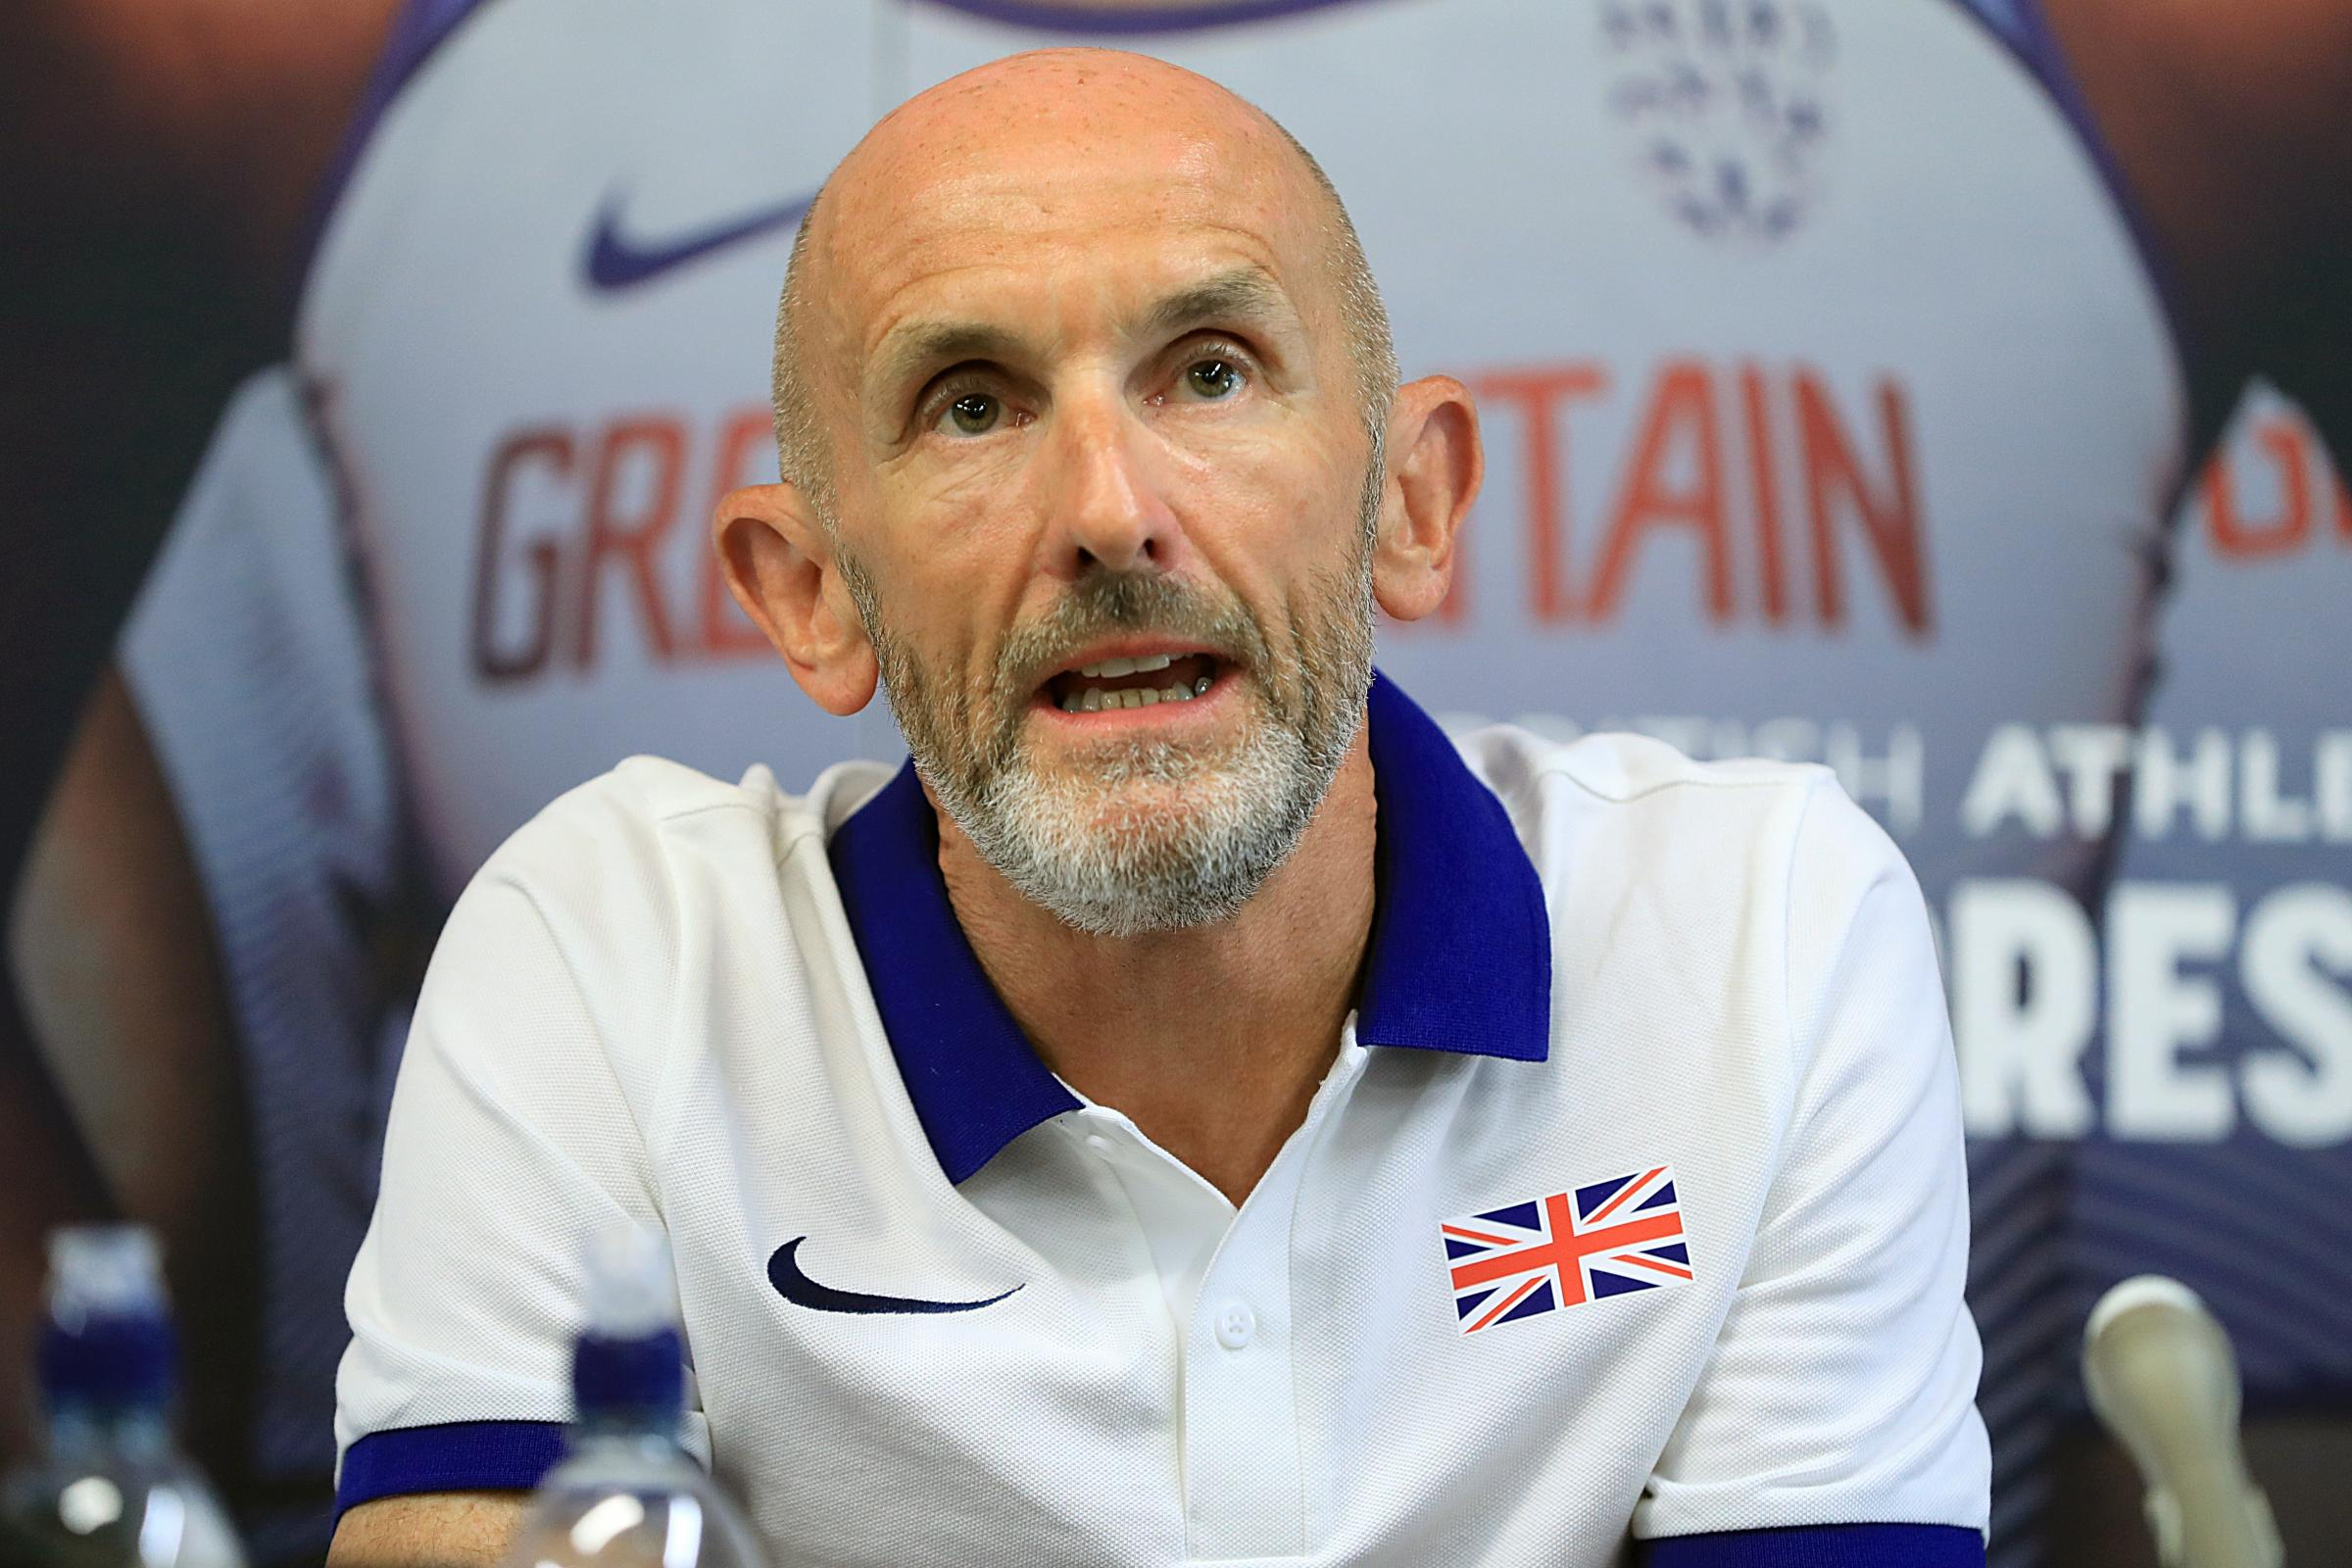 British Athletics performance director Neil Black has defended the selection policy for the European Indoor Championships